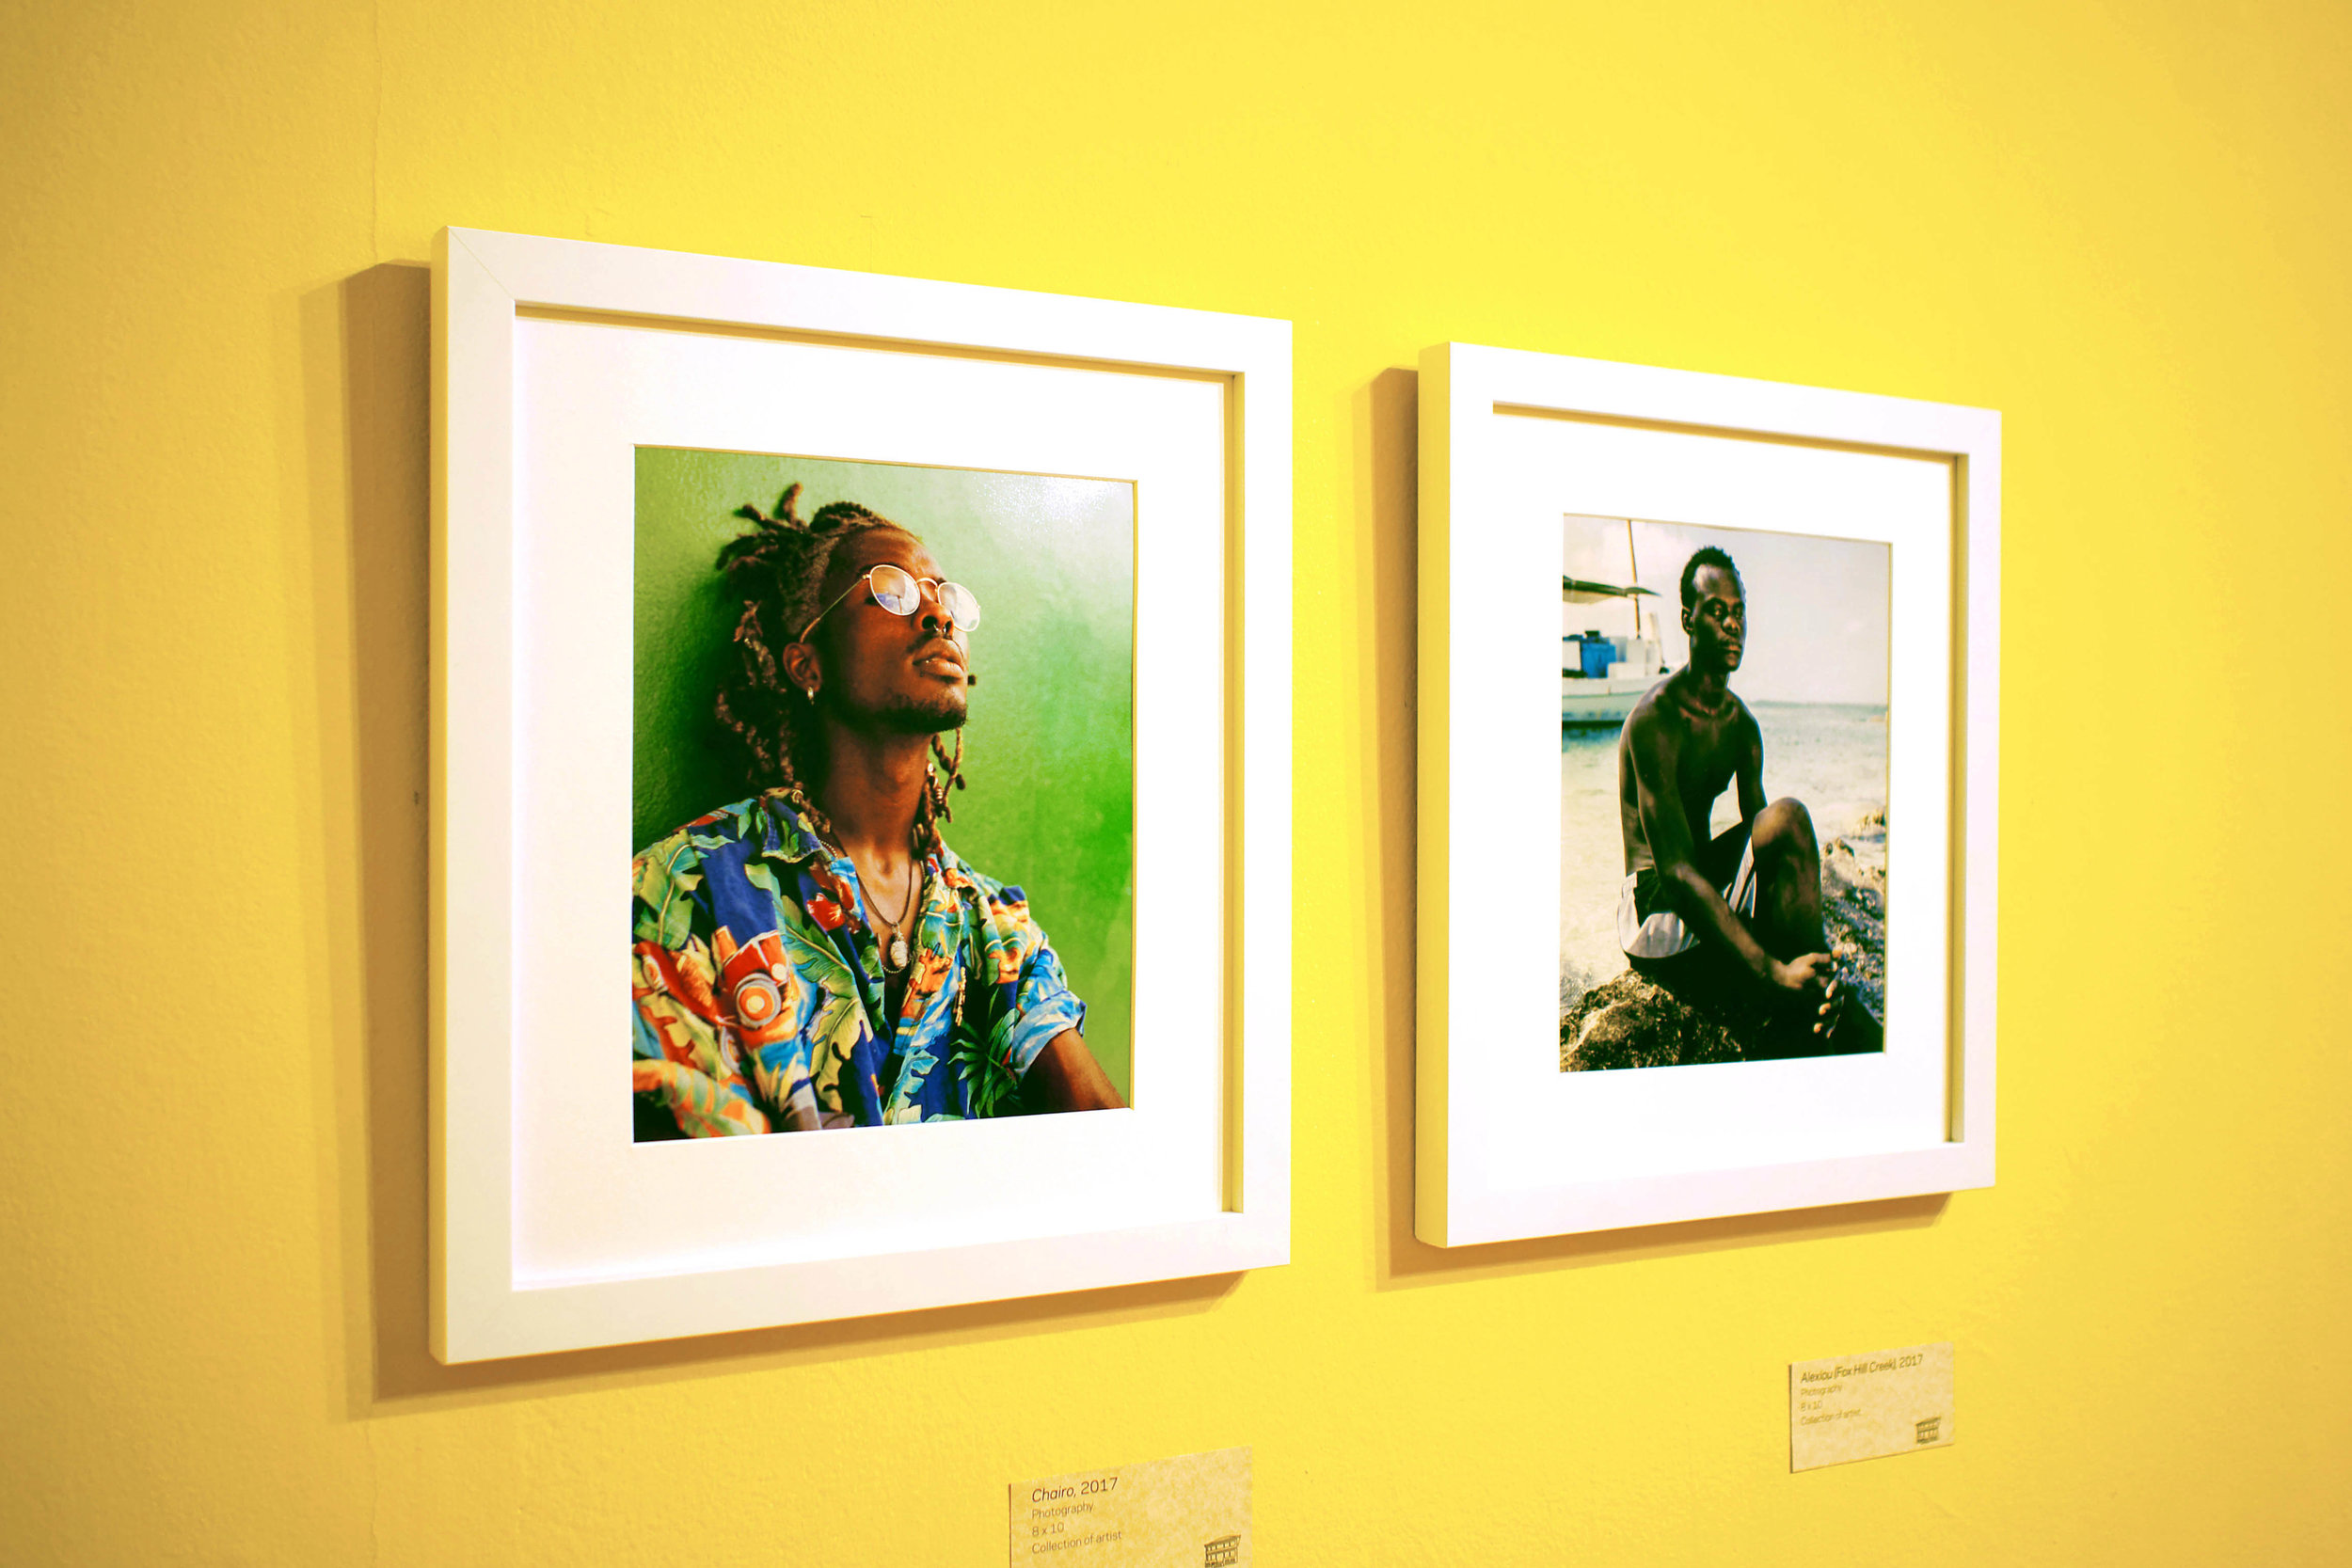 """Installation shot of """"Some Re(Assembly) Required"""" on view in the Project Space Room at the National Art Gallery of The Bahamas through December 3rd, 2017."""